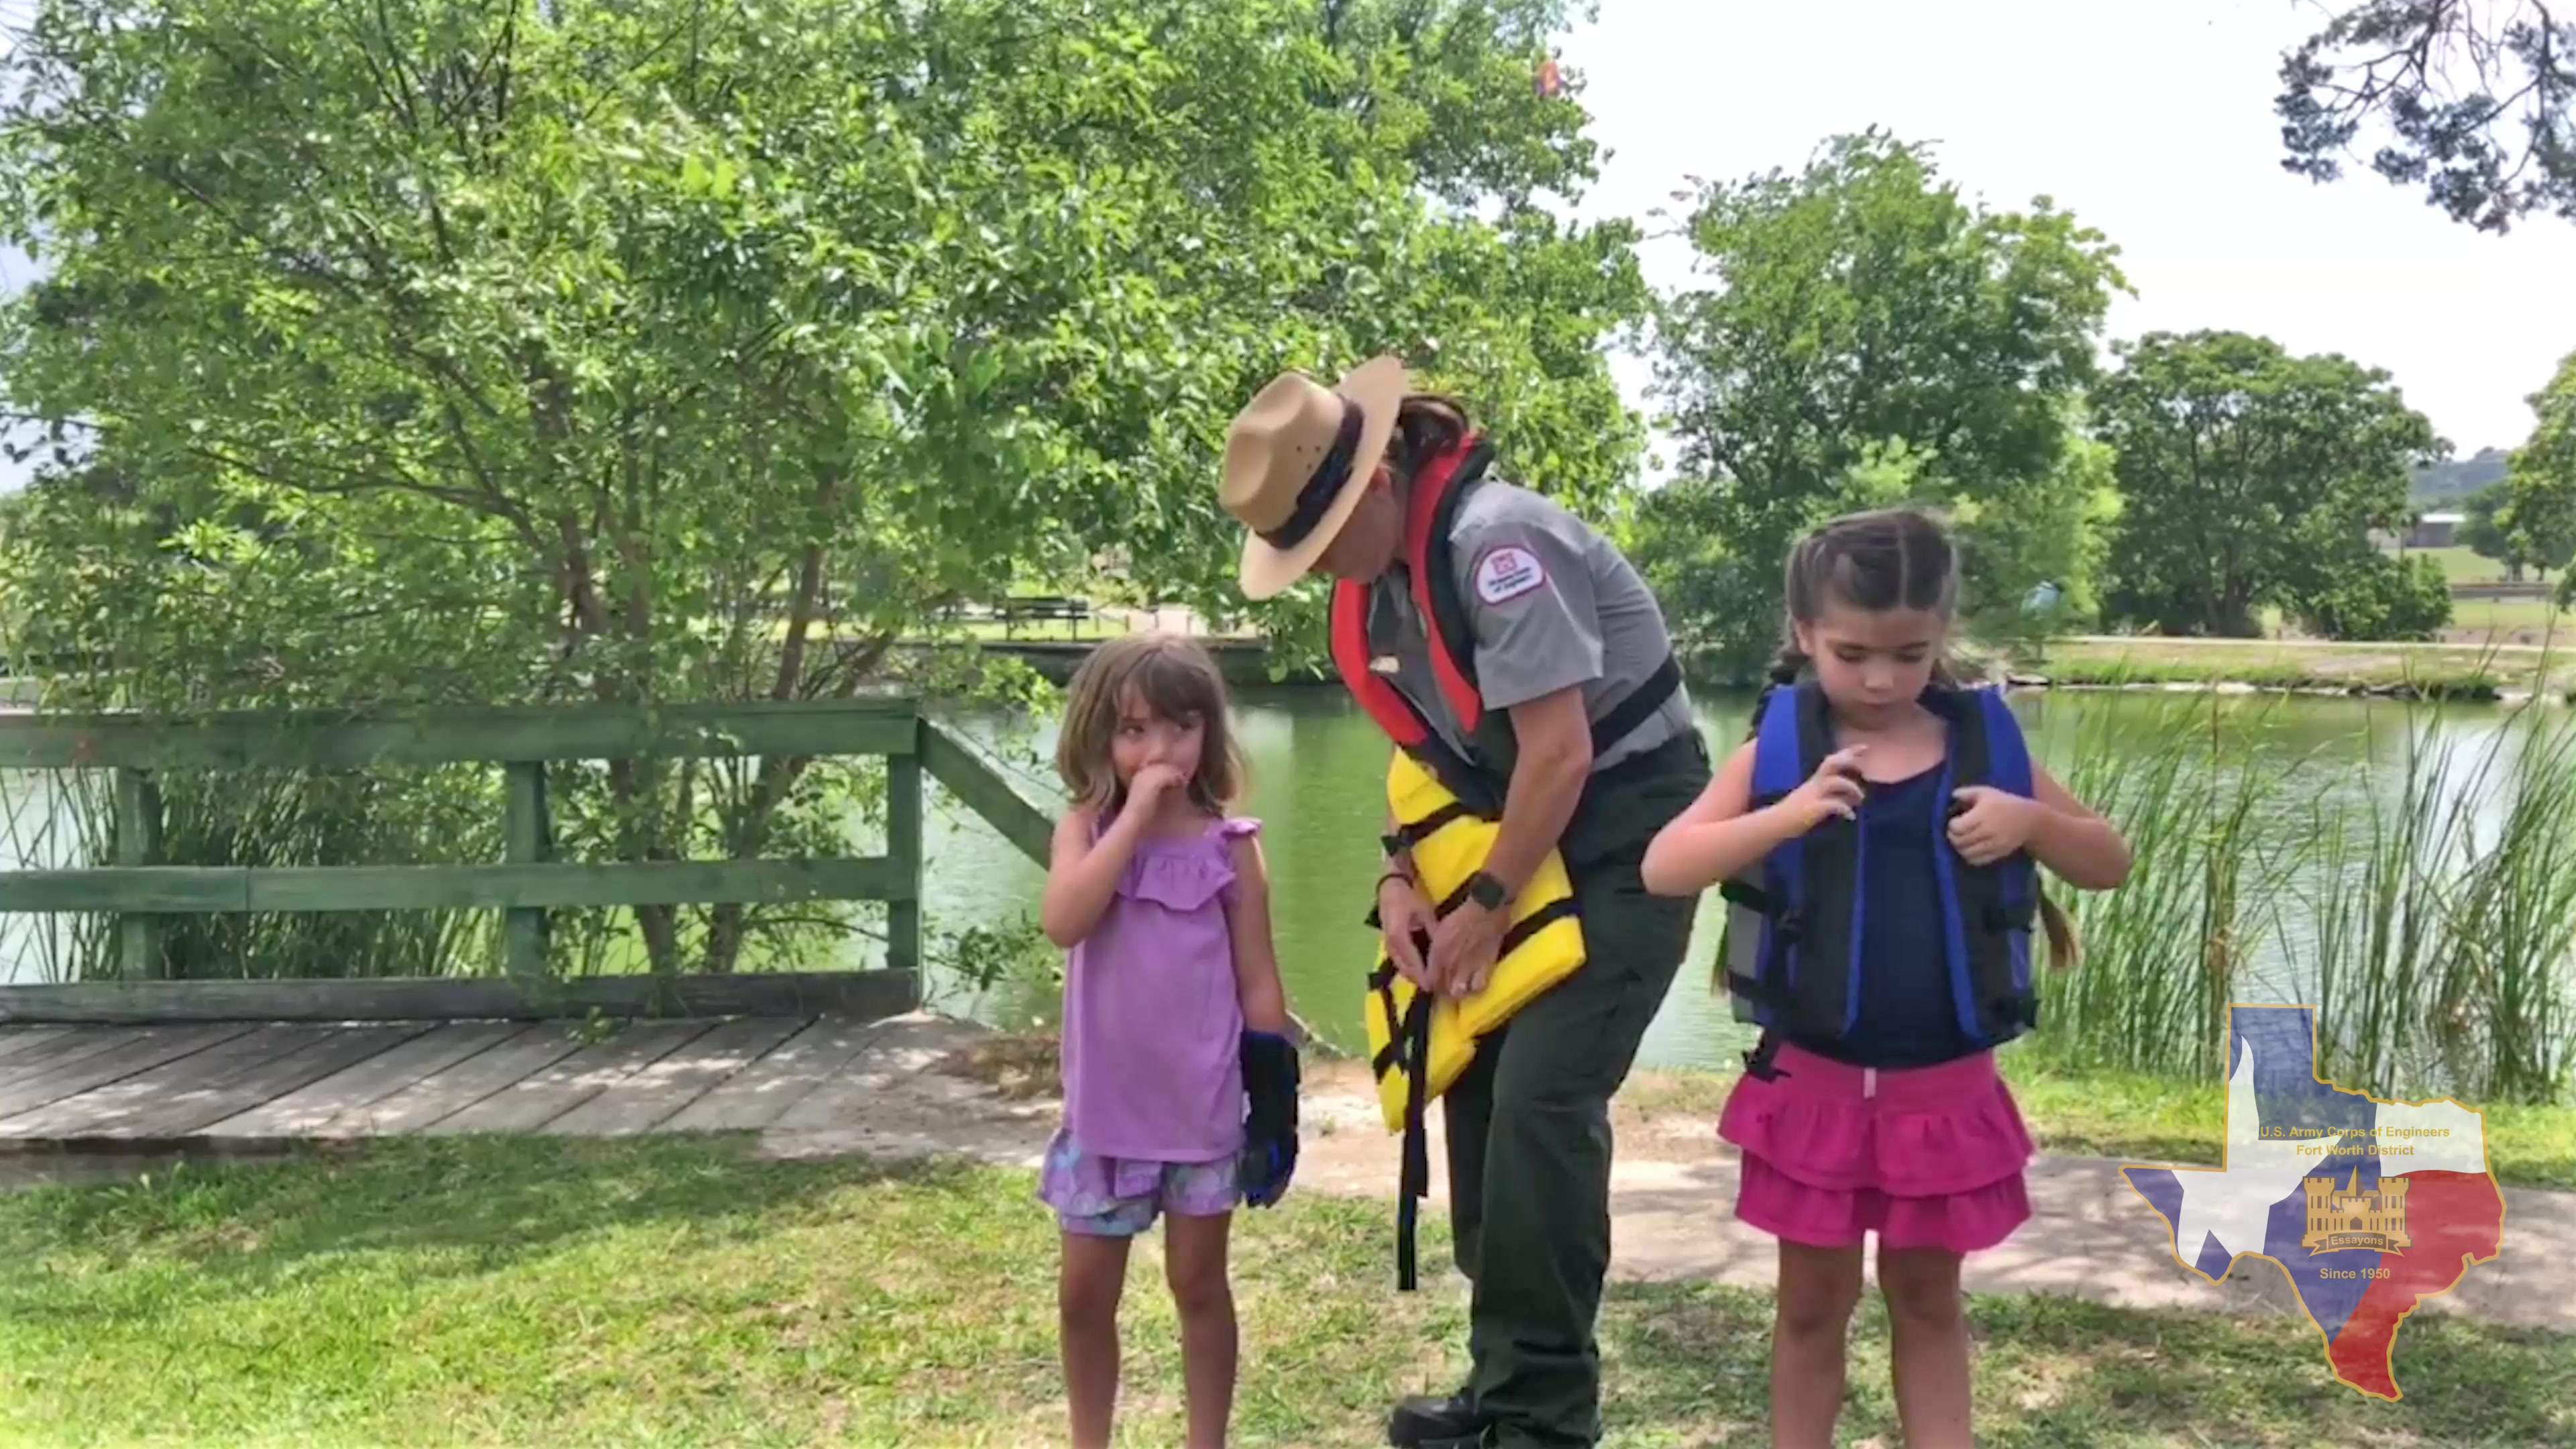 Learn how to inspect and properly fit a life jacket with Proctor Lake's Ranger Stephanie Jones and her two, too cute, guests.